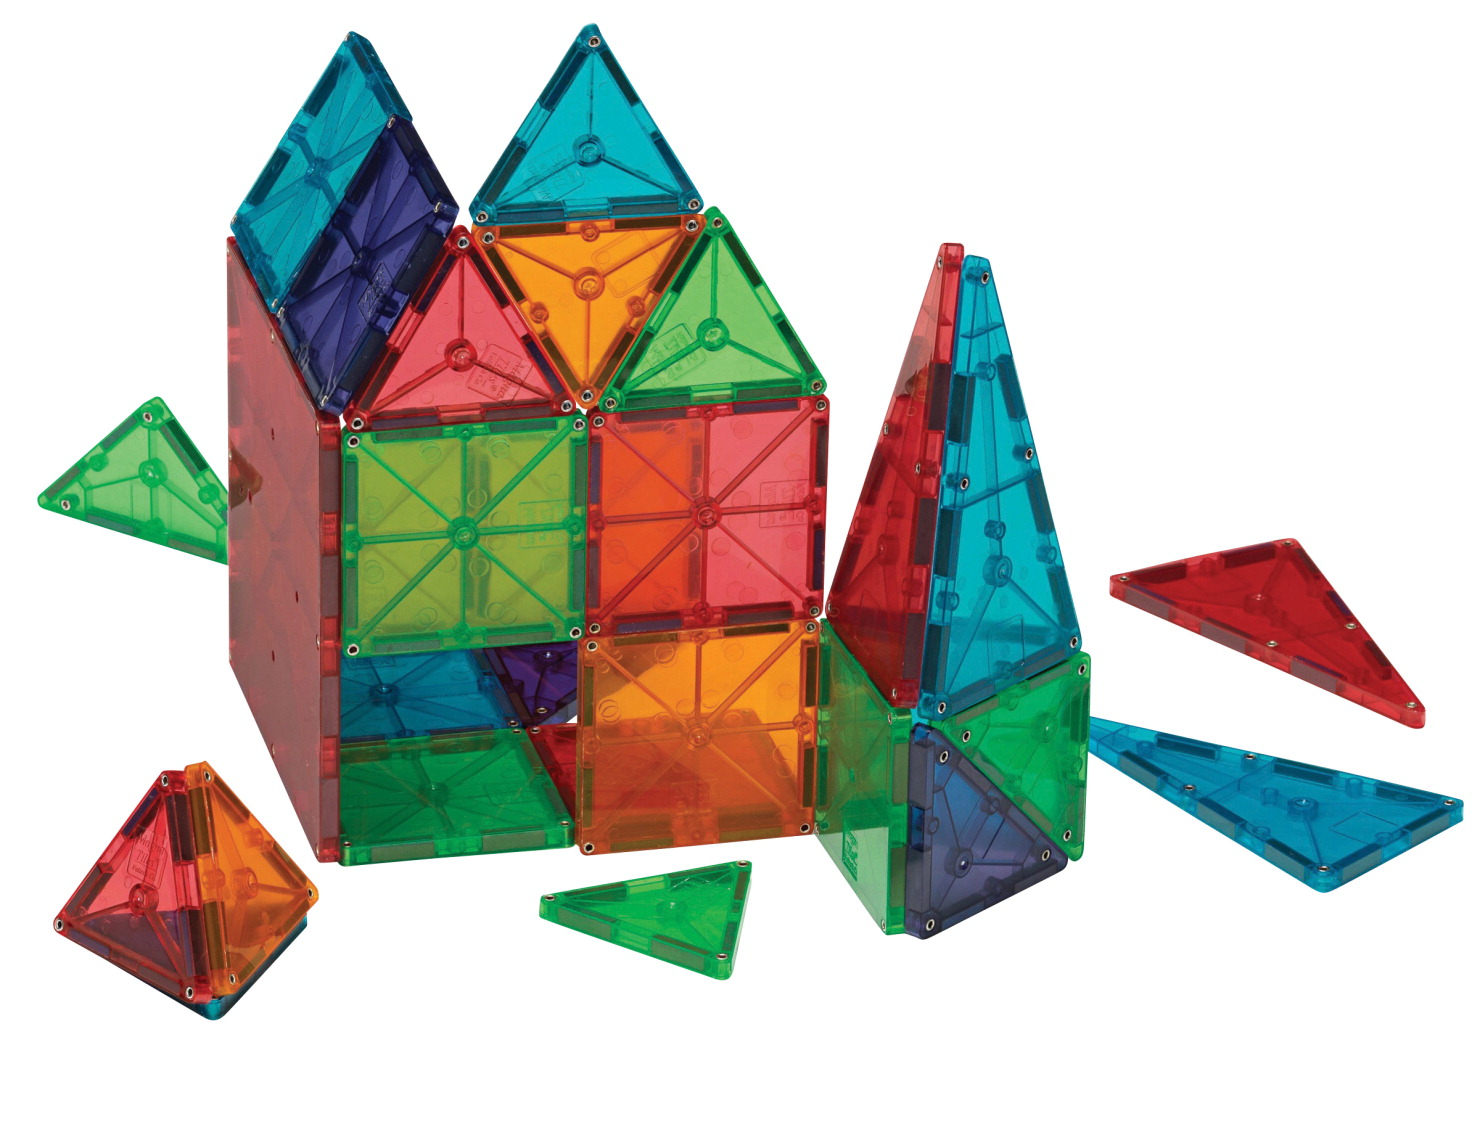 Magna-Tiles 3-D Magnetic Building Tiles, Translucent Colors, Set of 100